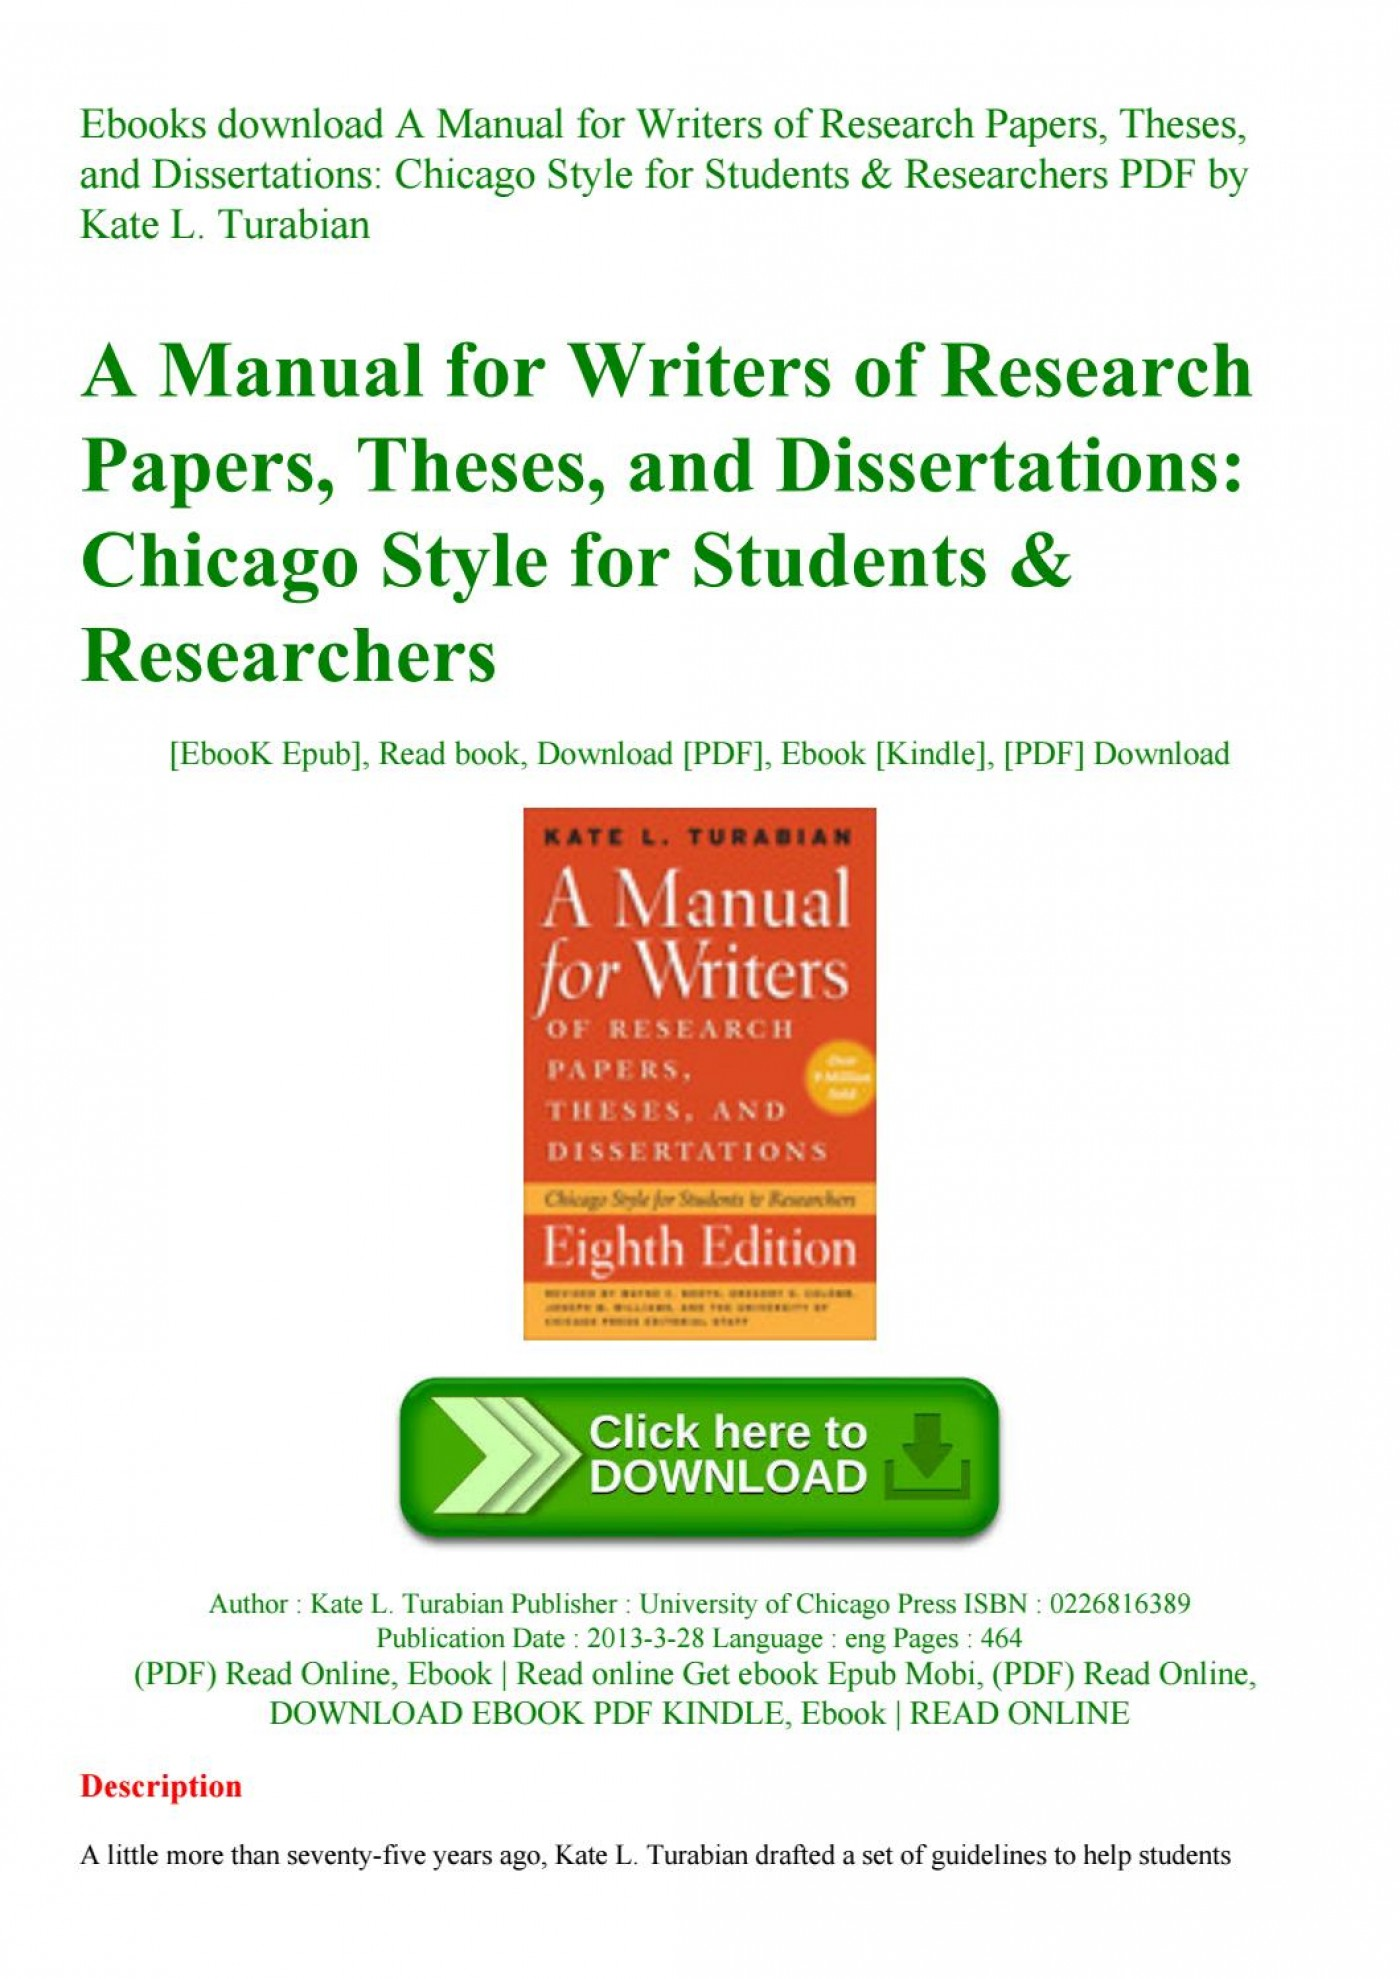 006 Manual For Writers Of Researchs Theses And Dissertations Turabian Page 1 Amazing A Research Papers Pdf 1400